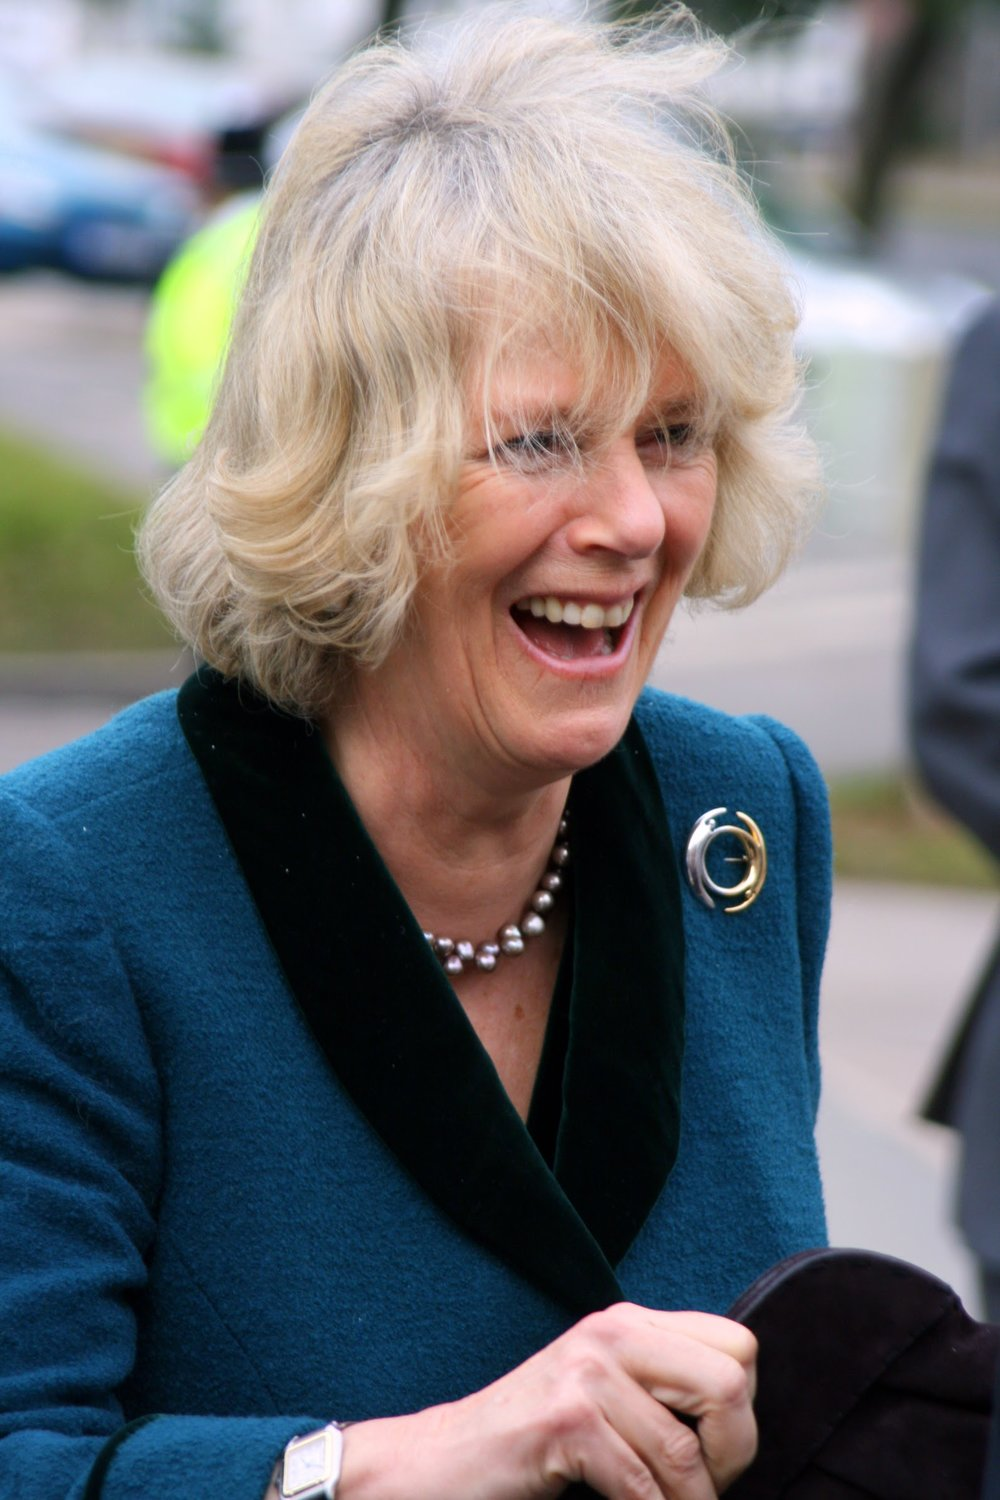 HRH The Duchess of Cornwall visits Rotherham General Hospital. The Duchess had entrusted an Aide with her handbag, was getting in her car and remembered she had forgot it, and burst out laughing when the Lord Lieutenant joked there'd been a theft! - Date: February 2009. Photographer: Paul Ratcliffe